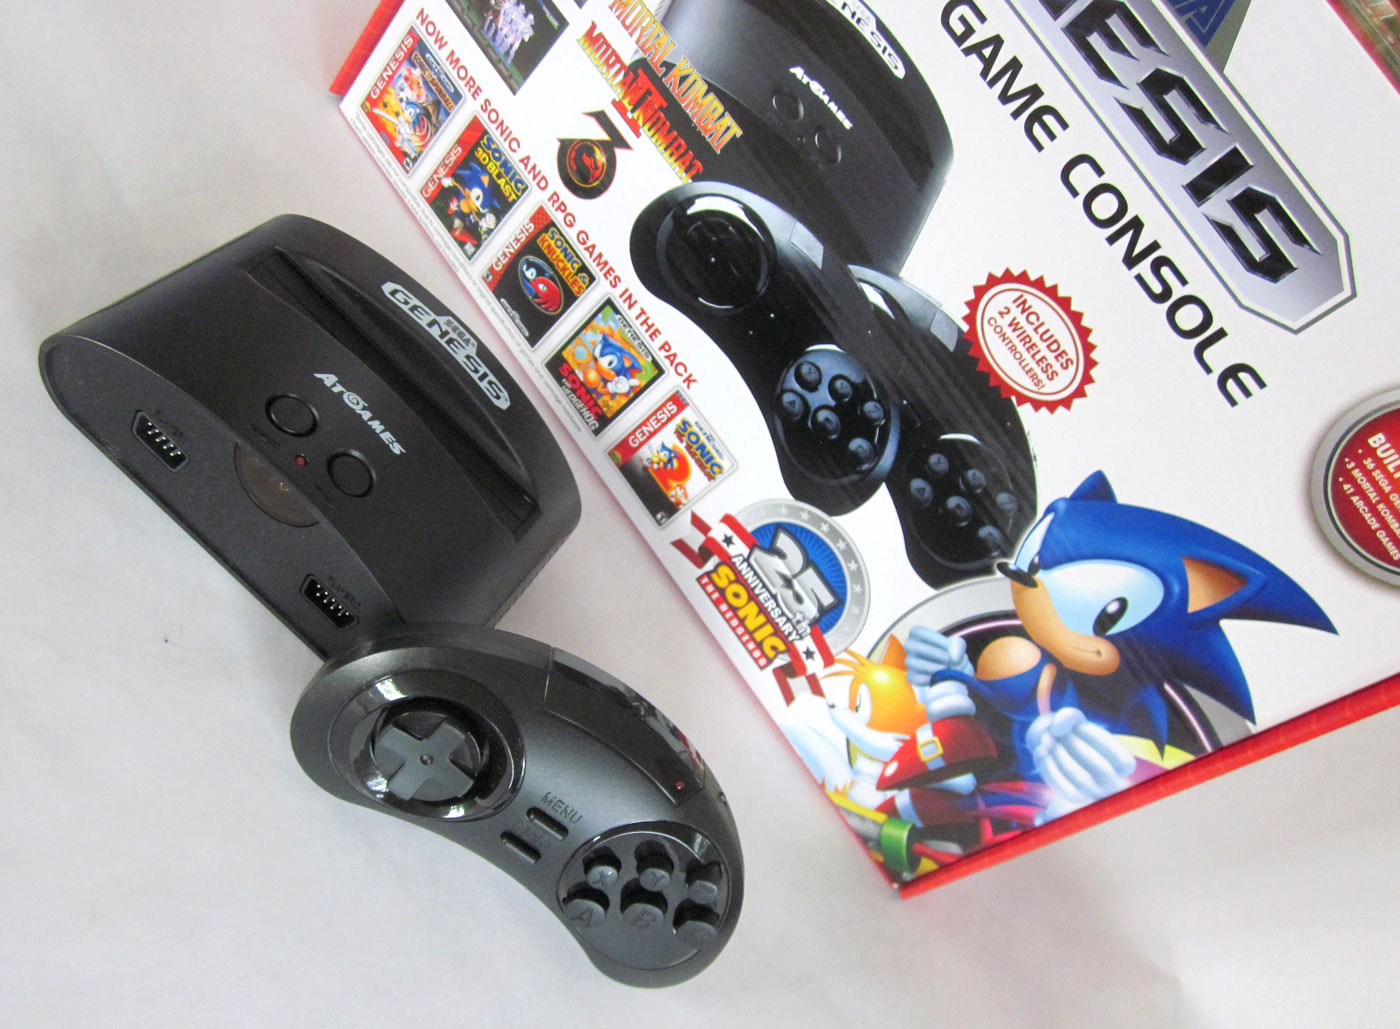 Check out the 2016 genesis classic game console from - Atgames sega genesis classic game console game list ...